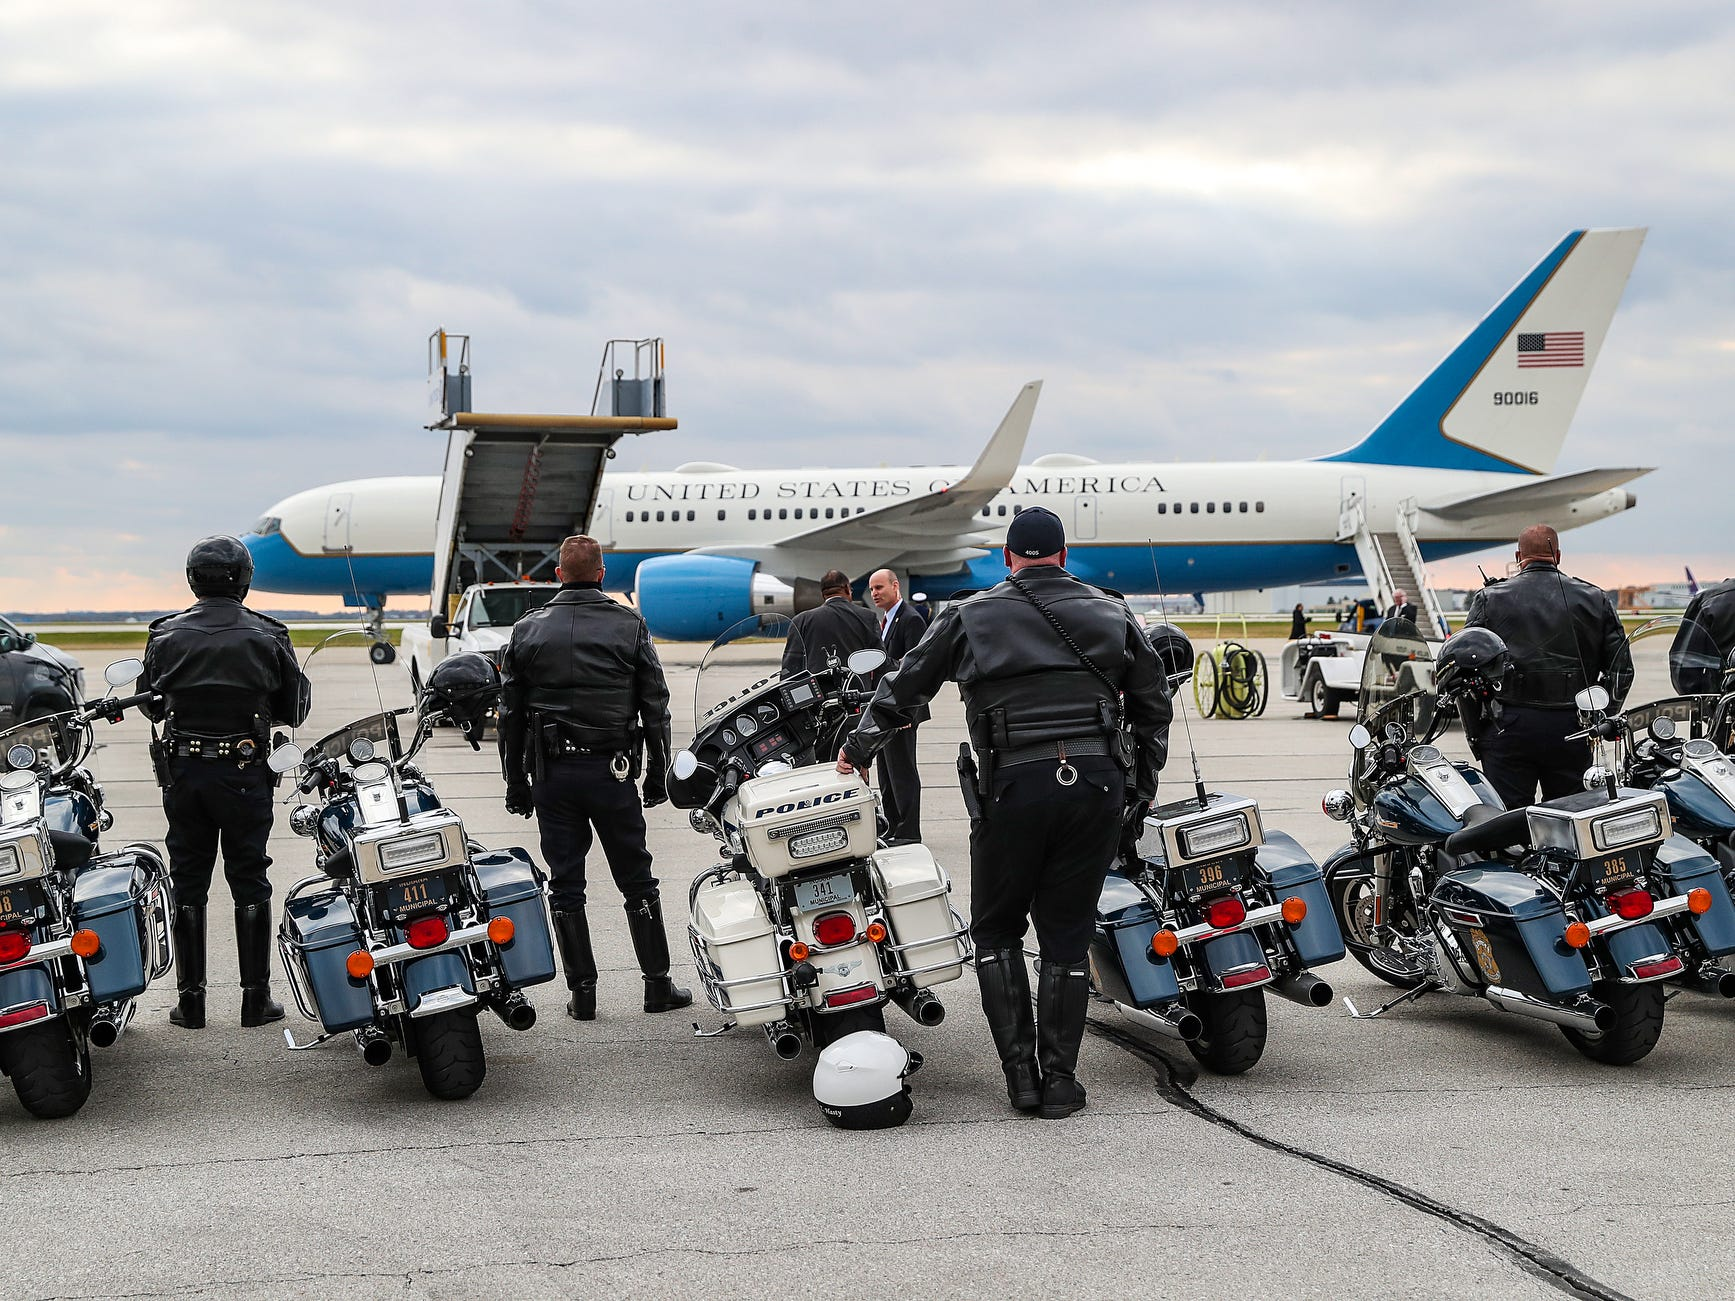 Indianapolis law enforcement officers watched as Air Force One, transporting President Donald Trump, prepared to depart after he spoke at the Future Farmers of America Convention and Expo at Banker's Life Fieldhouse, Saturday, Oct. 27, 2018. Trump was headed to Illinois next to speak at a rally.